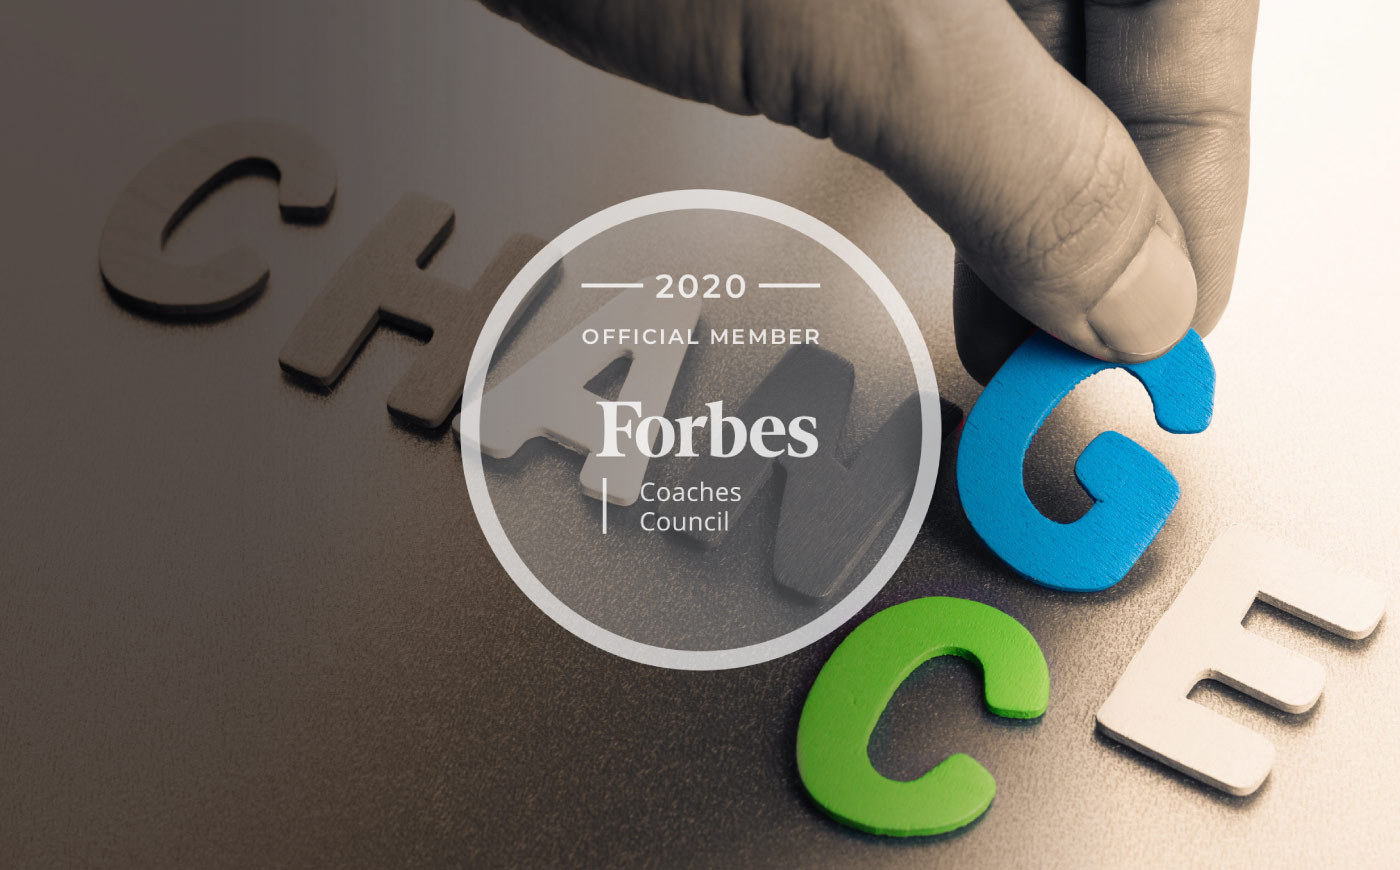 Jon Dwoskin Forbes Coaches Council Article: The World Has Changed — Here's How To Reset